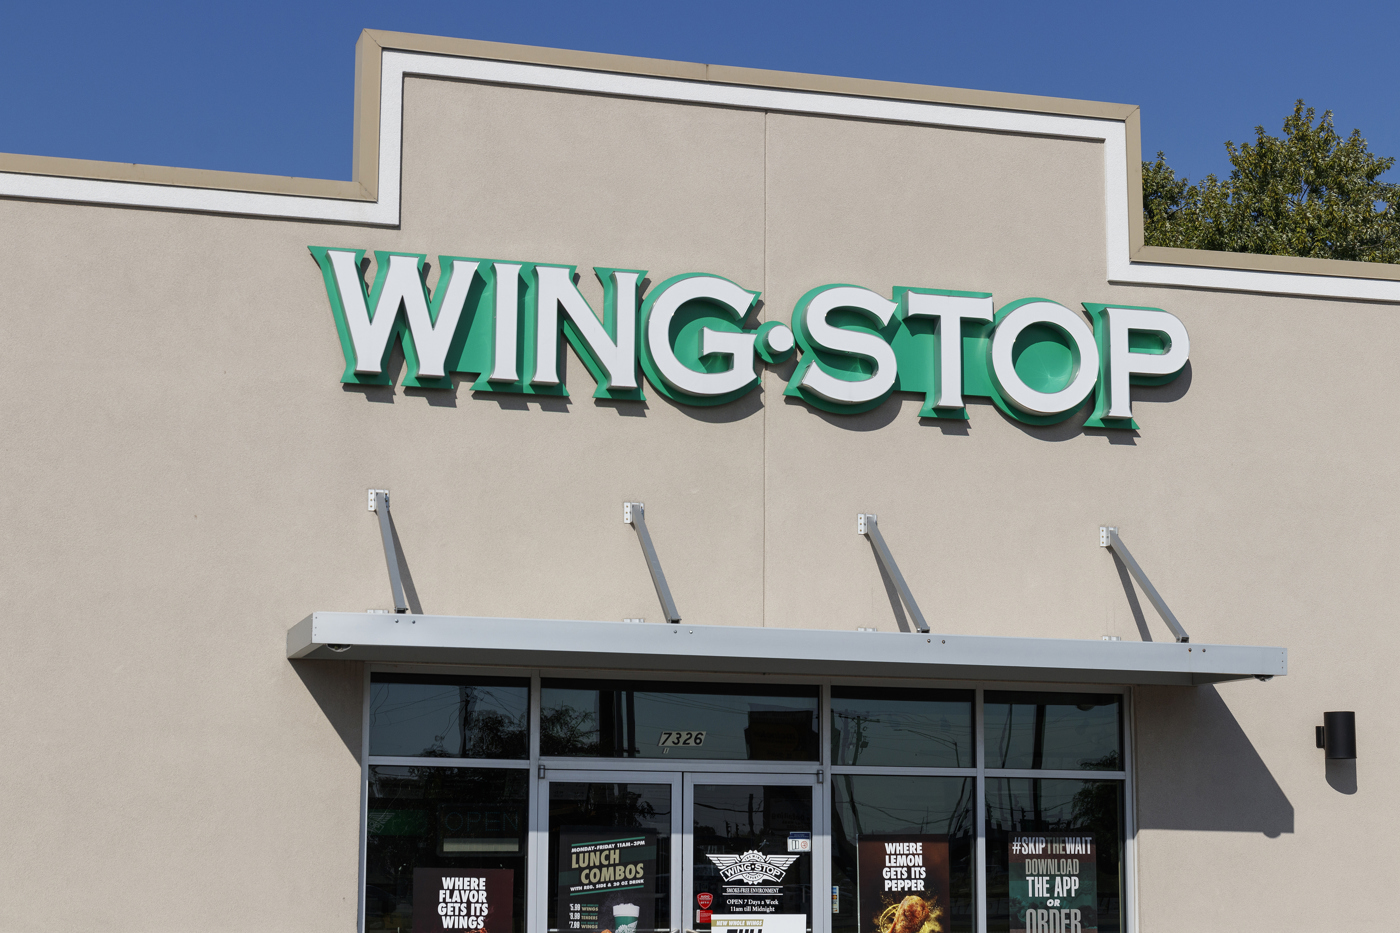 Wingstop stock, WING stock, WING stock news